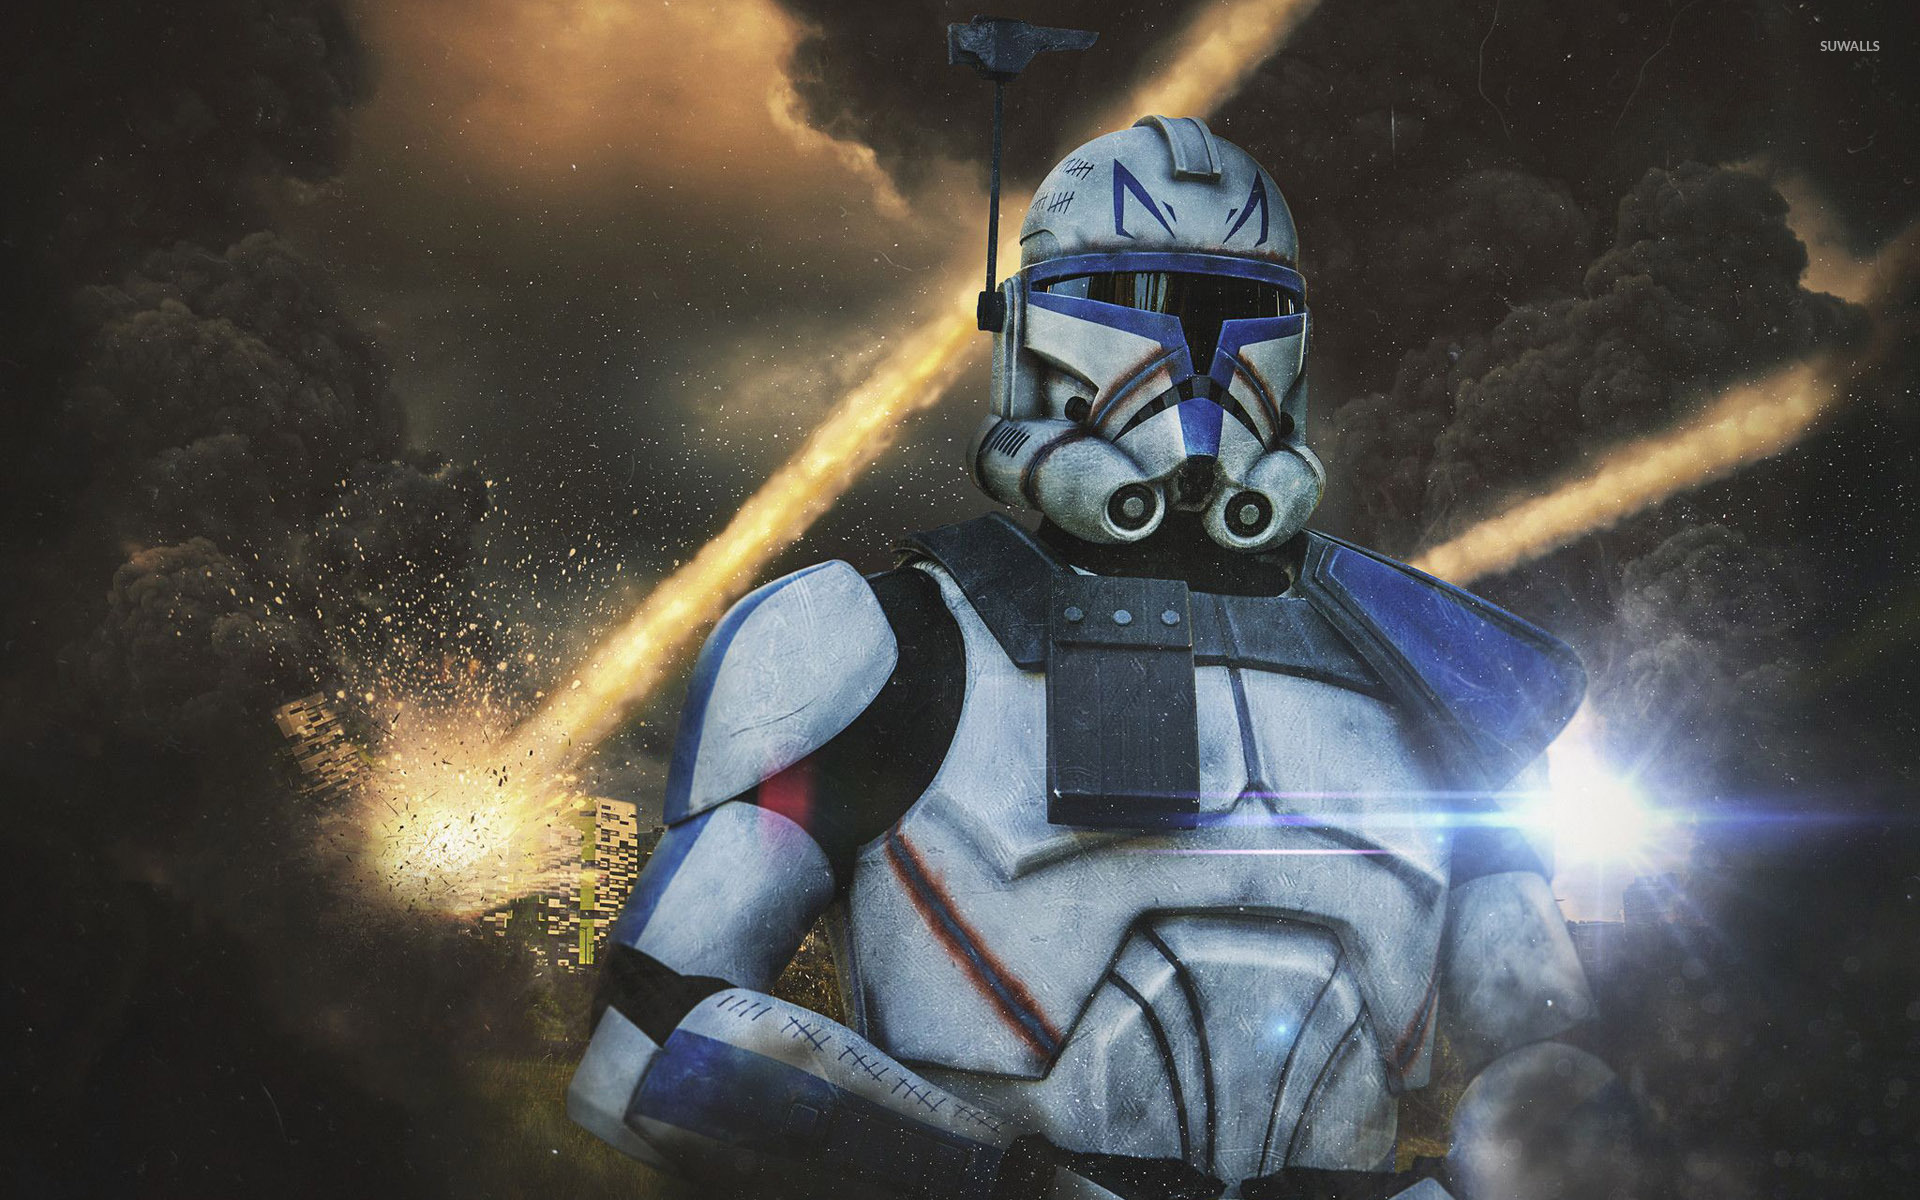 stormtrooper commander wallpaper digital art wallpapers